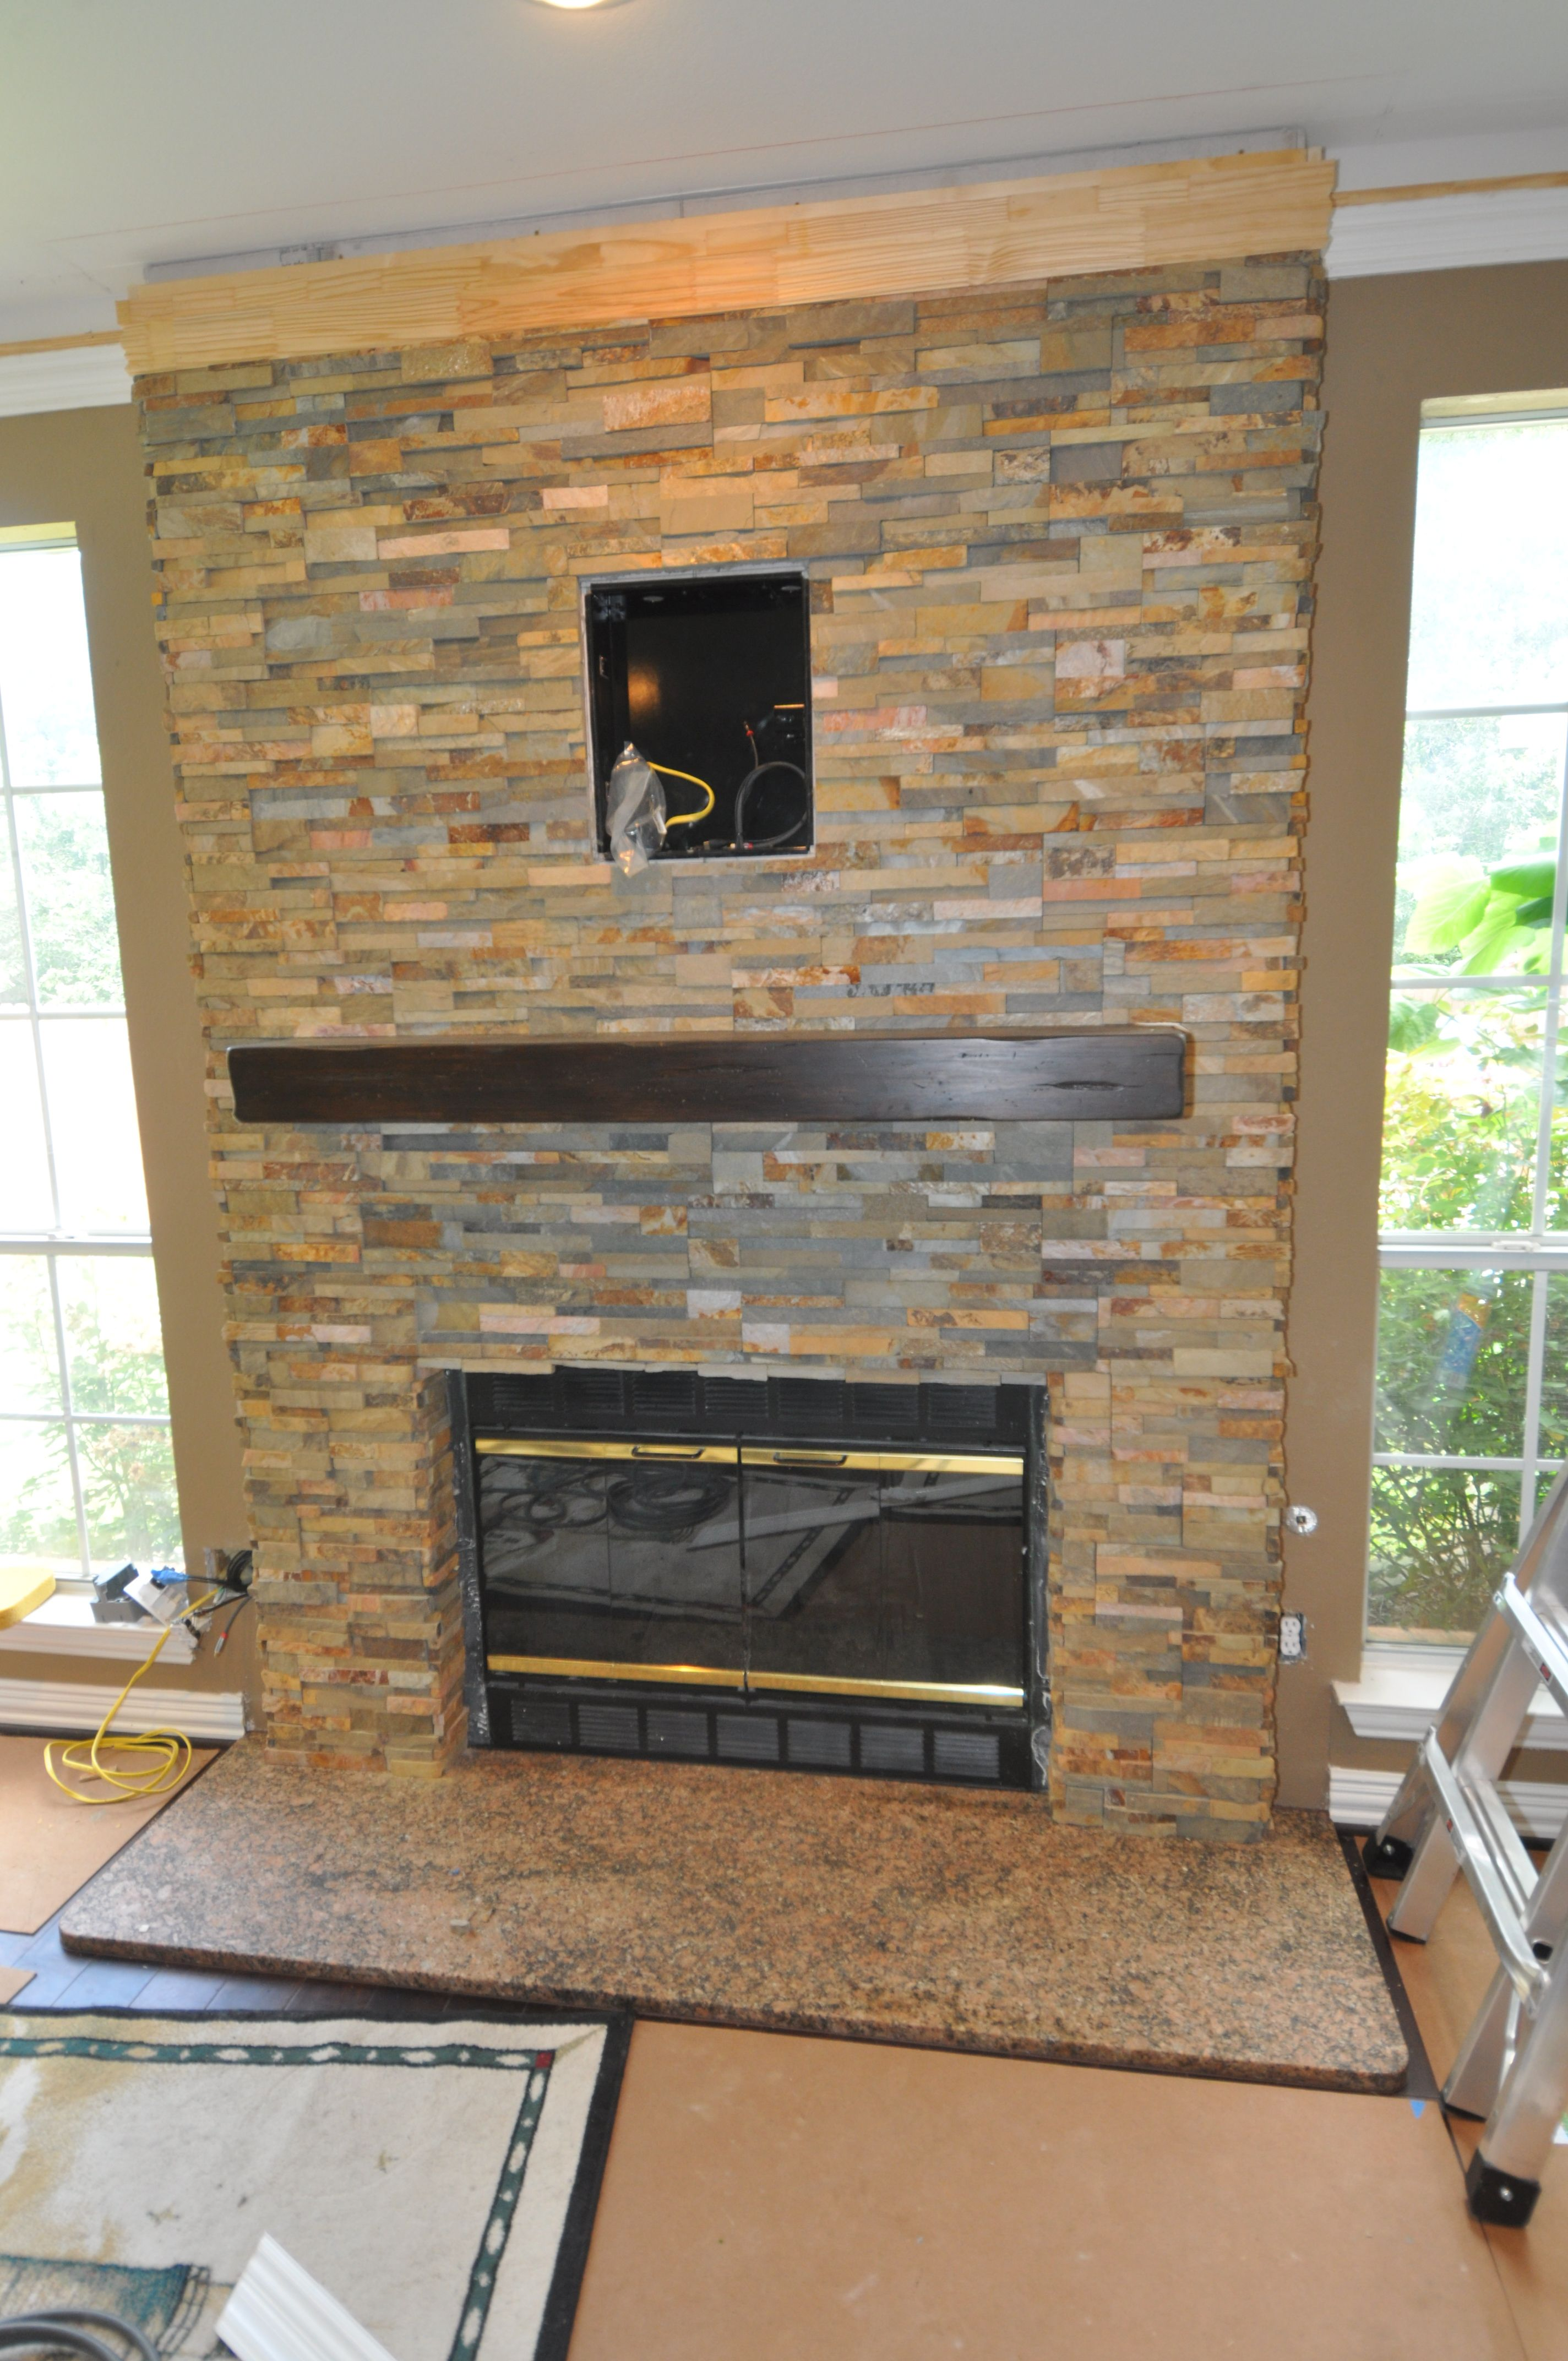 Pin By Texas Tile House On Fireplaces & Mantels -